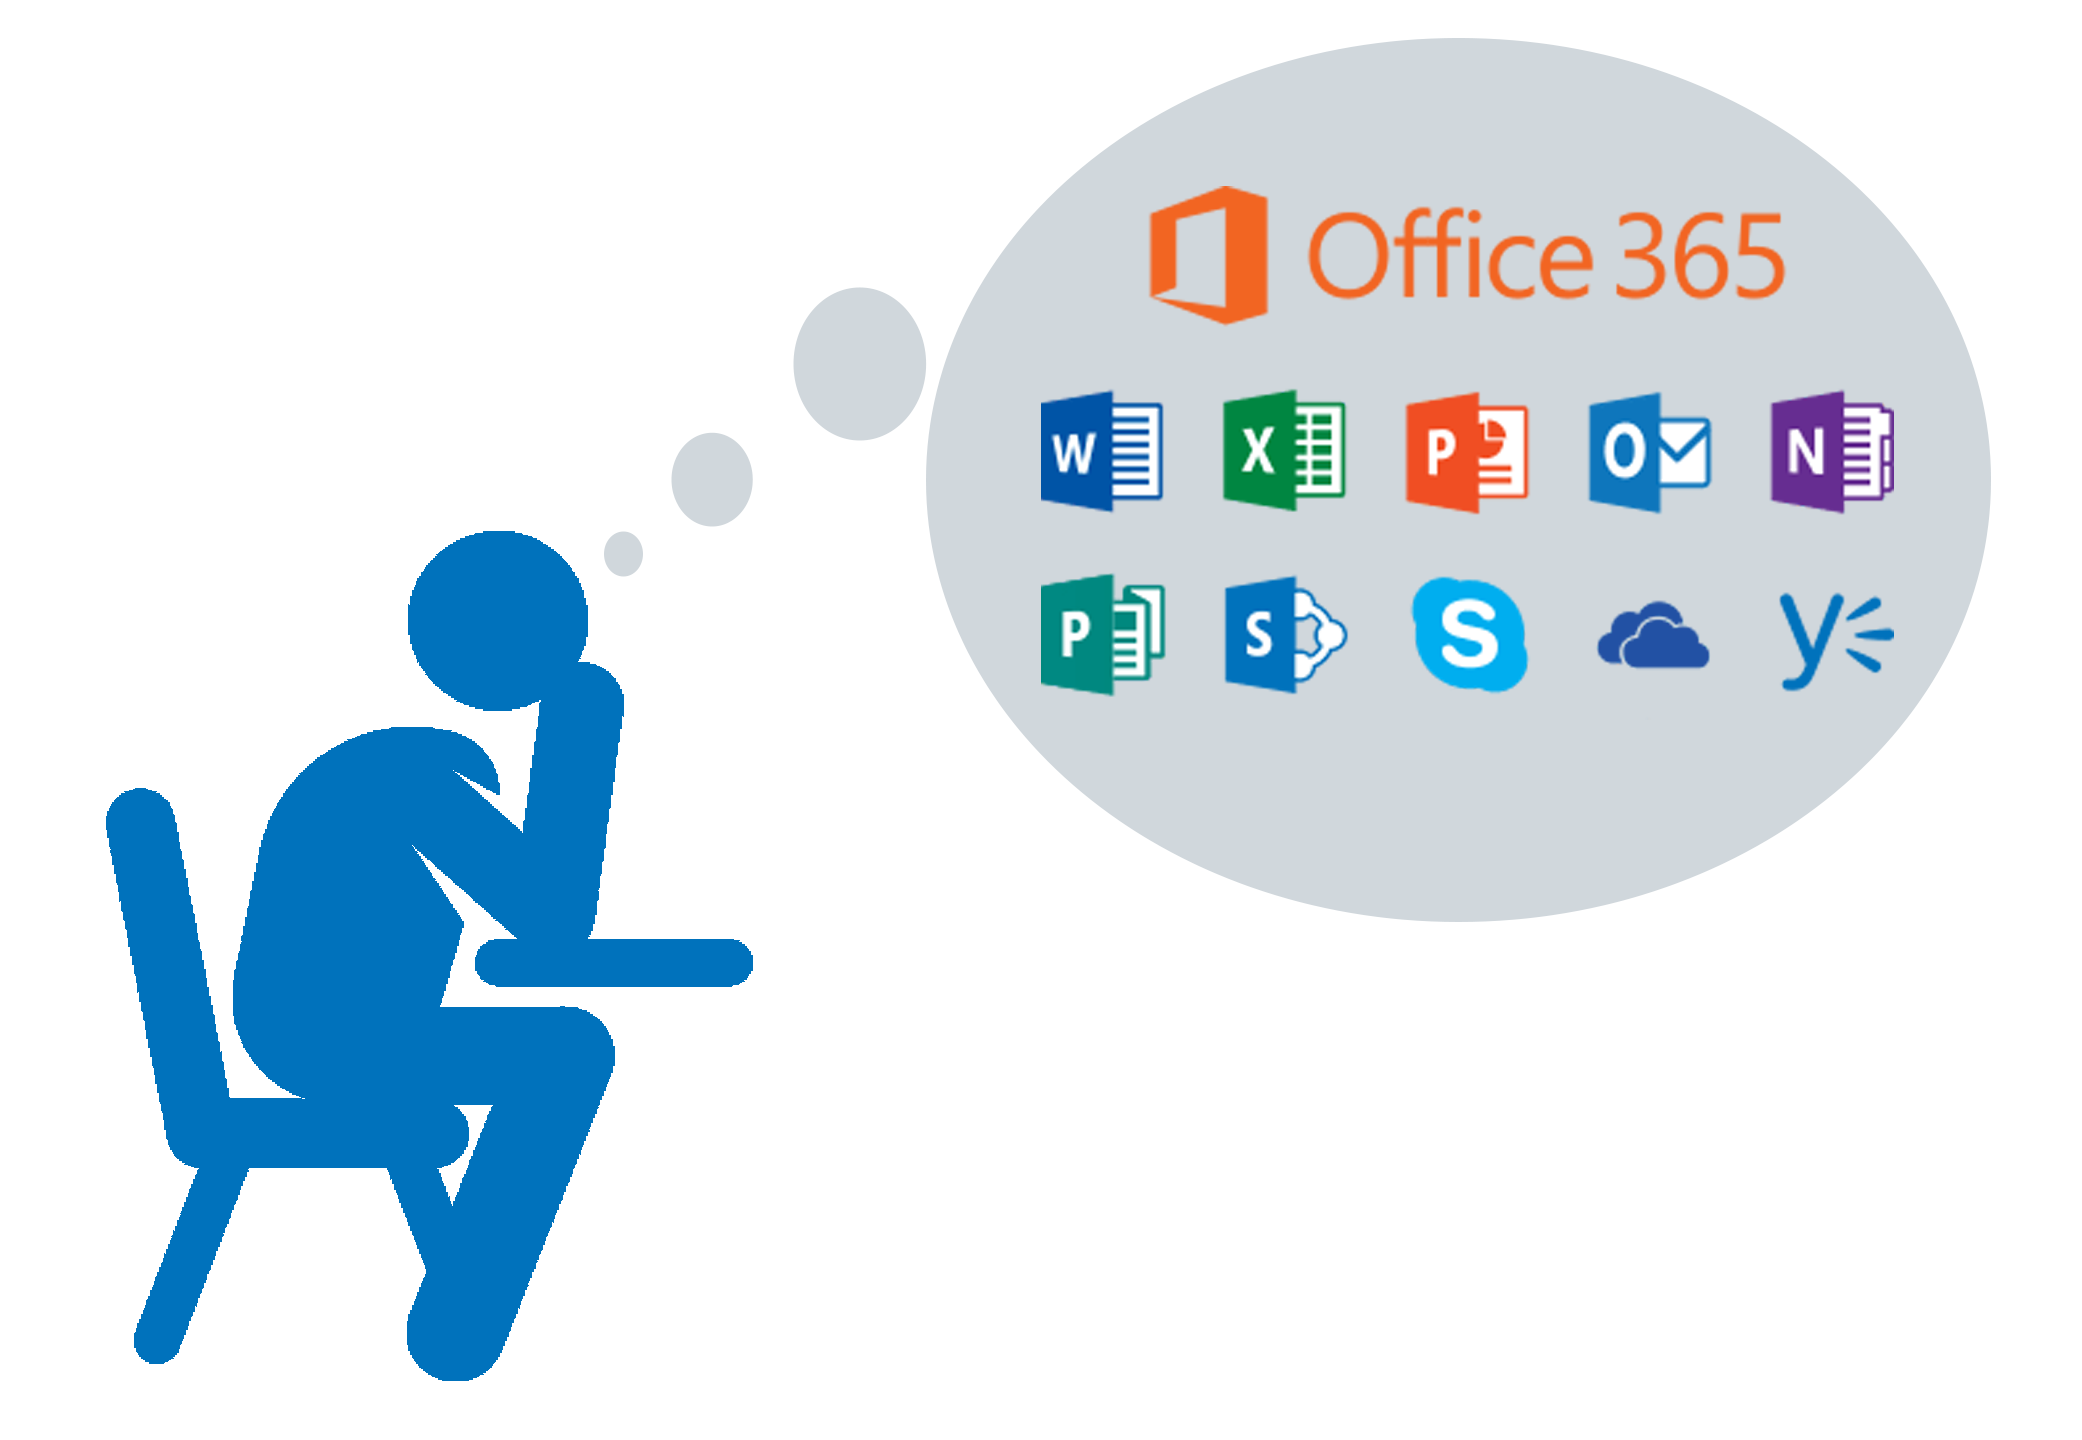 WhyOffice365AndSharePoint